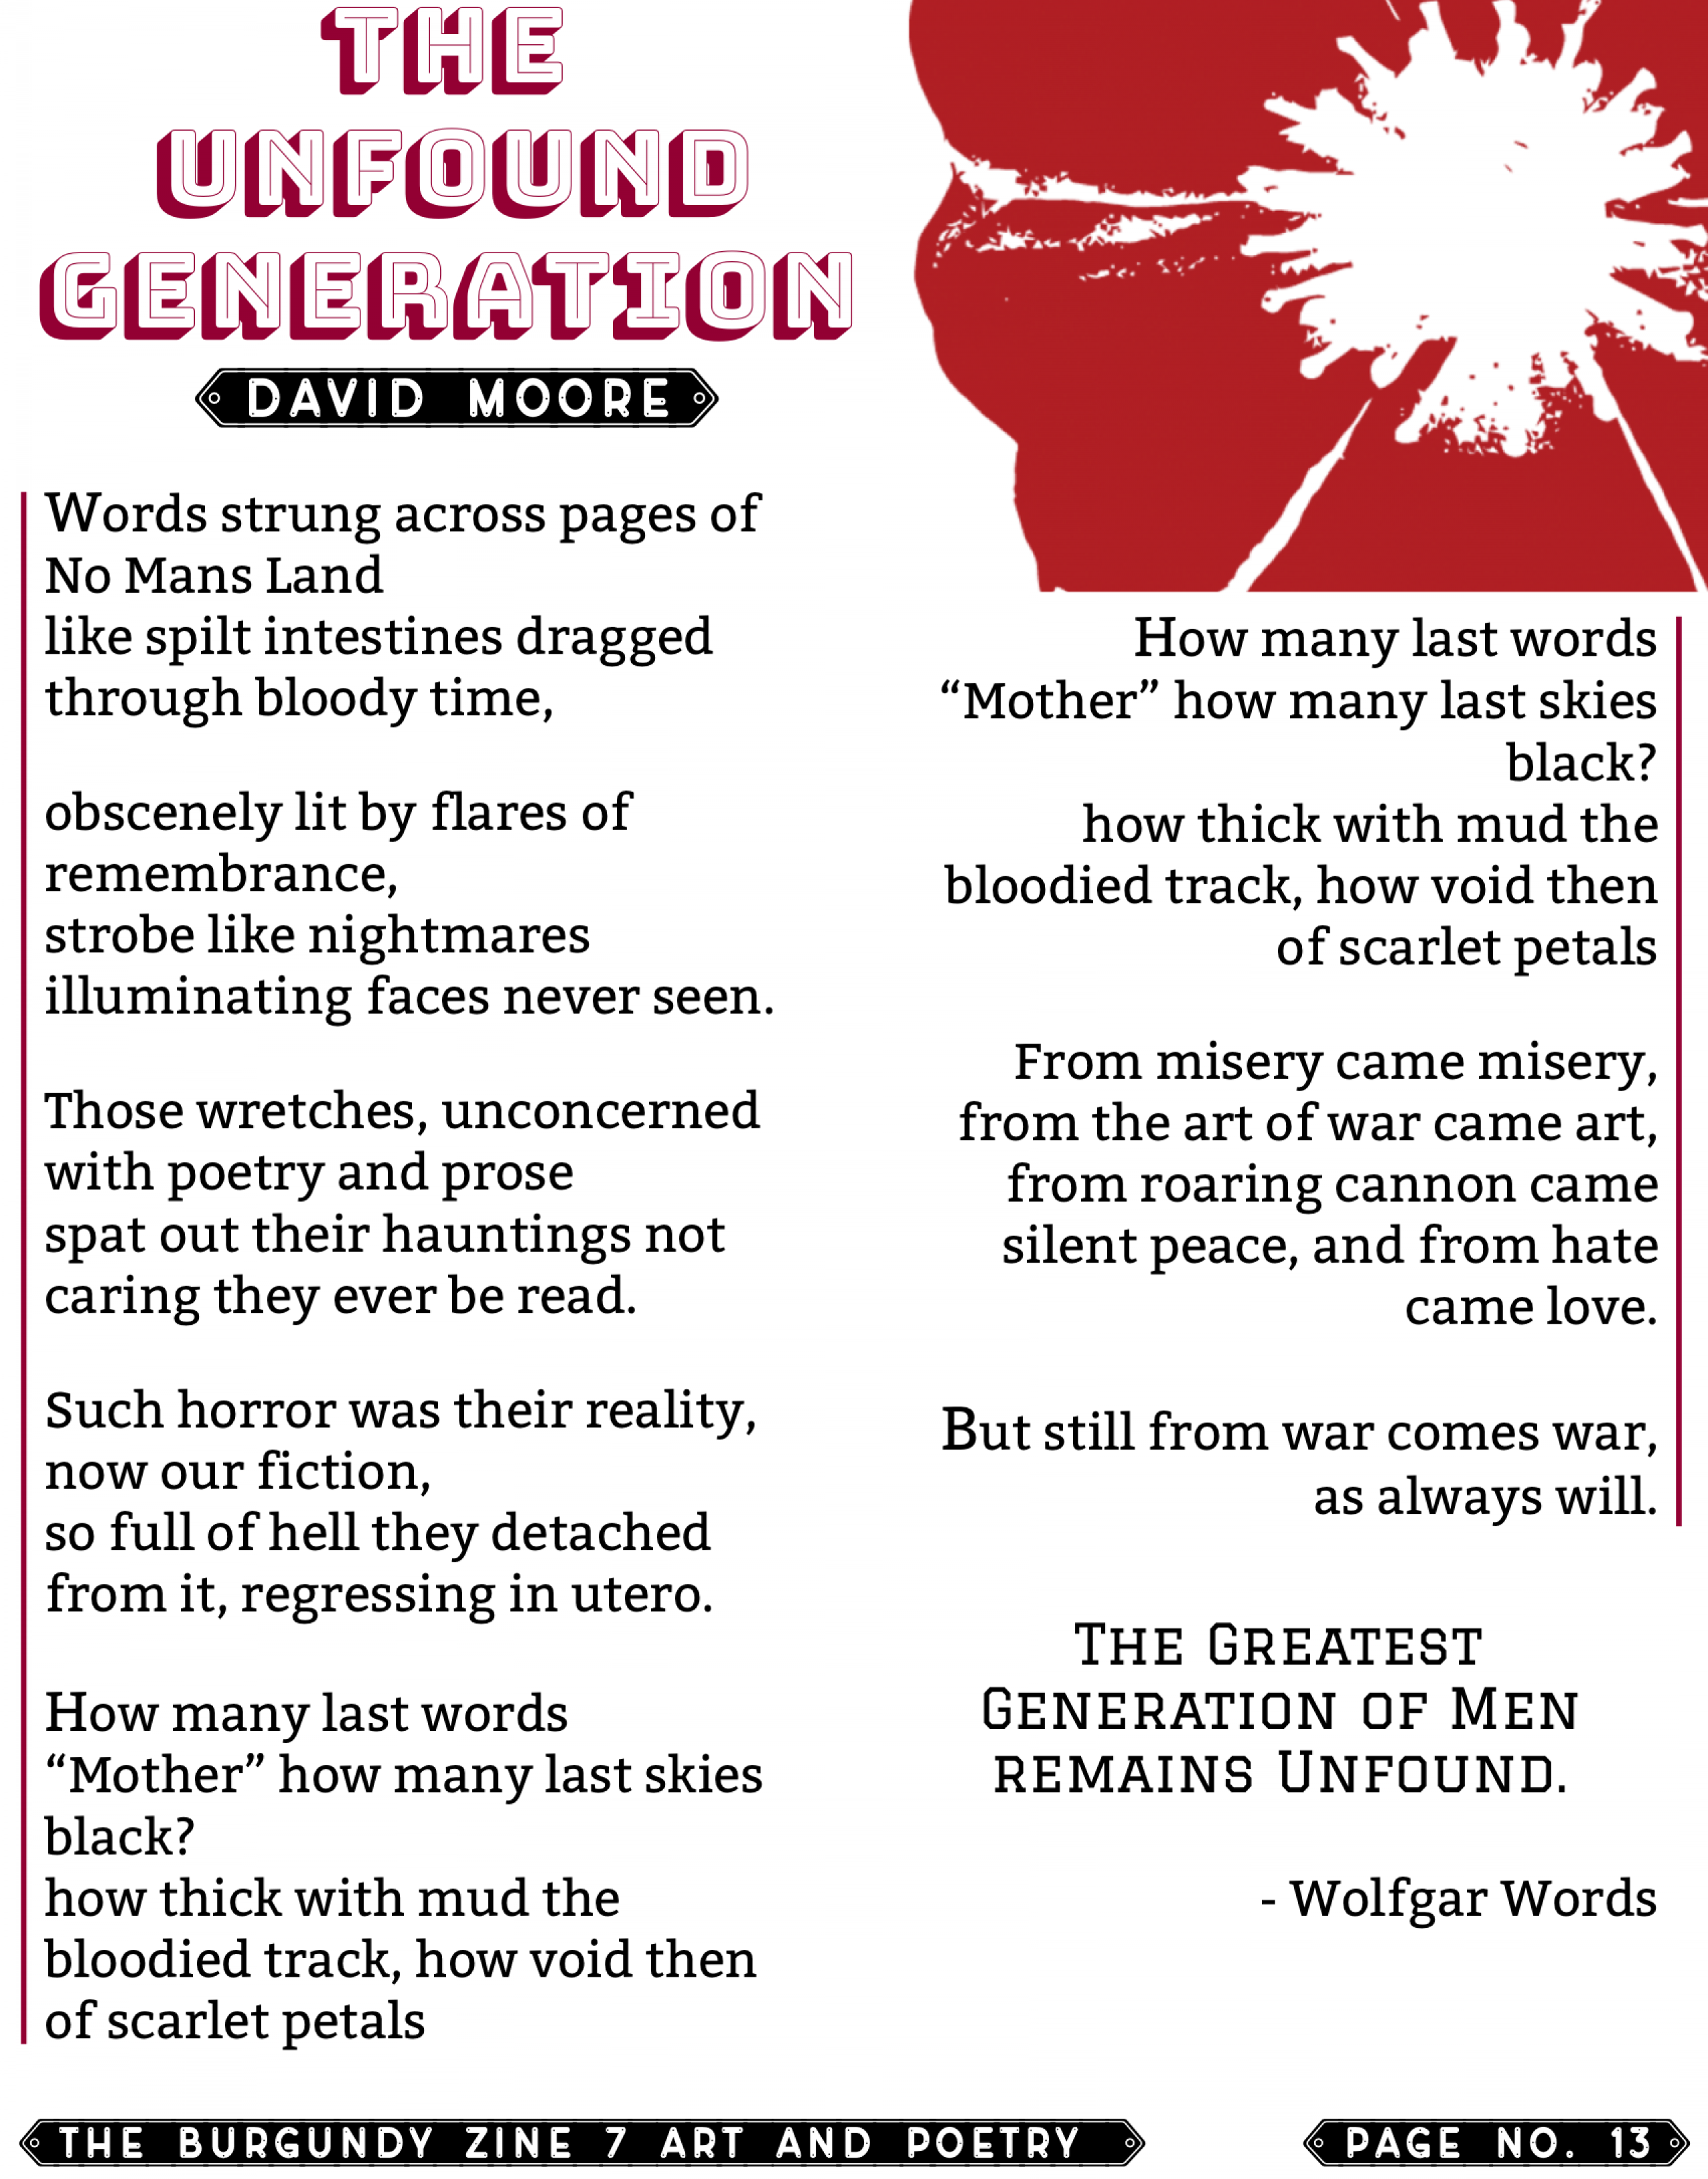 The Burgundy Zine #7 Art and Poetry 013